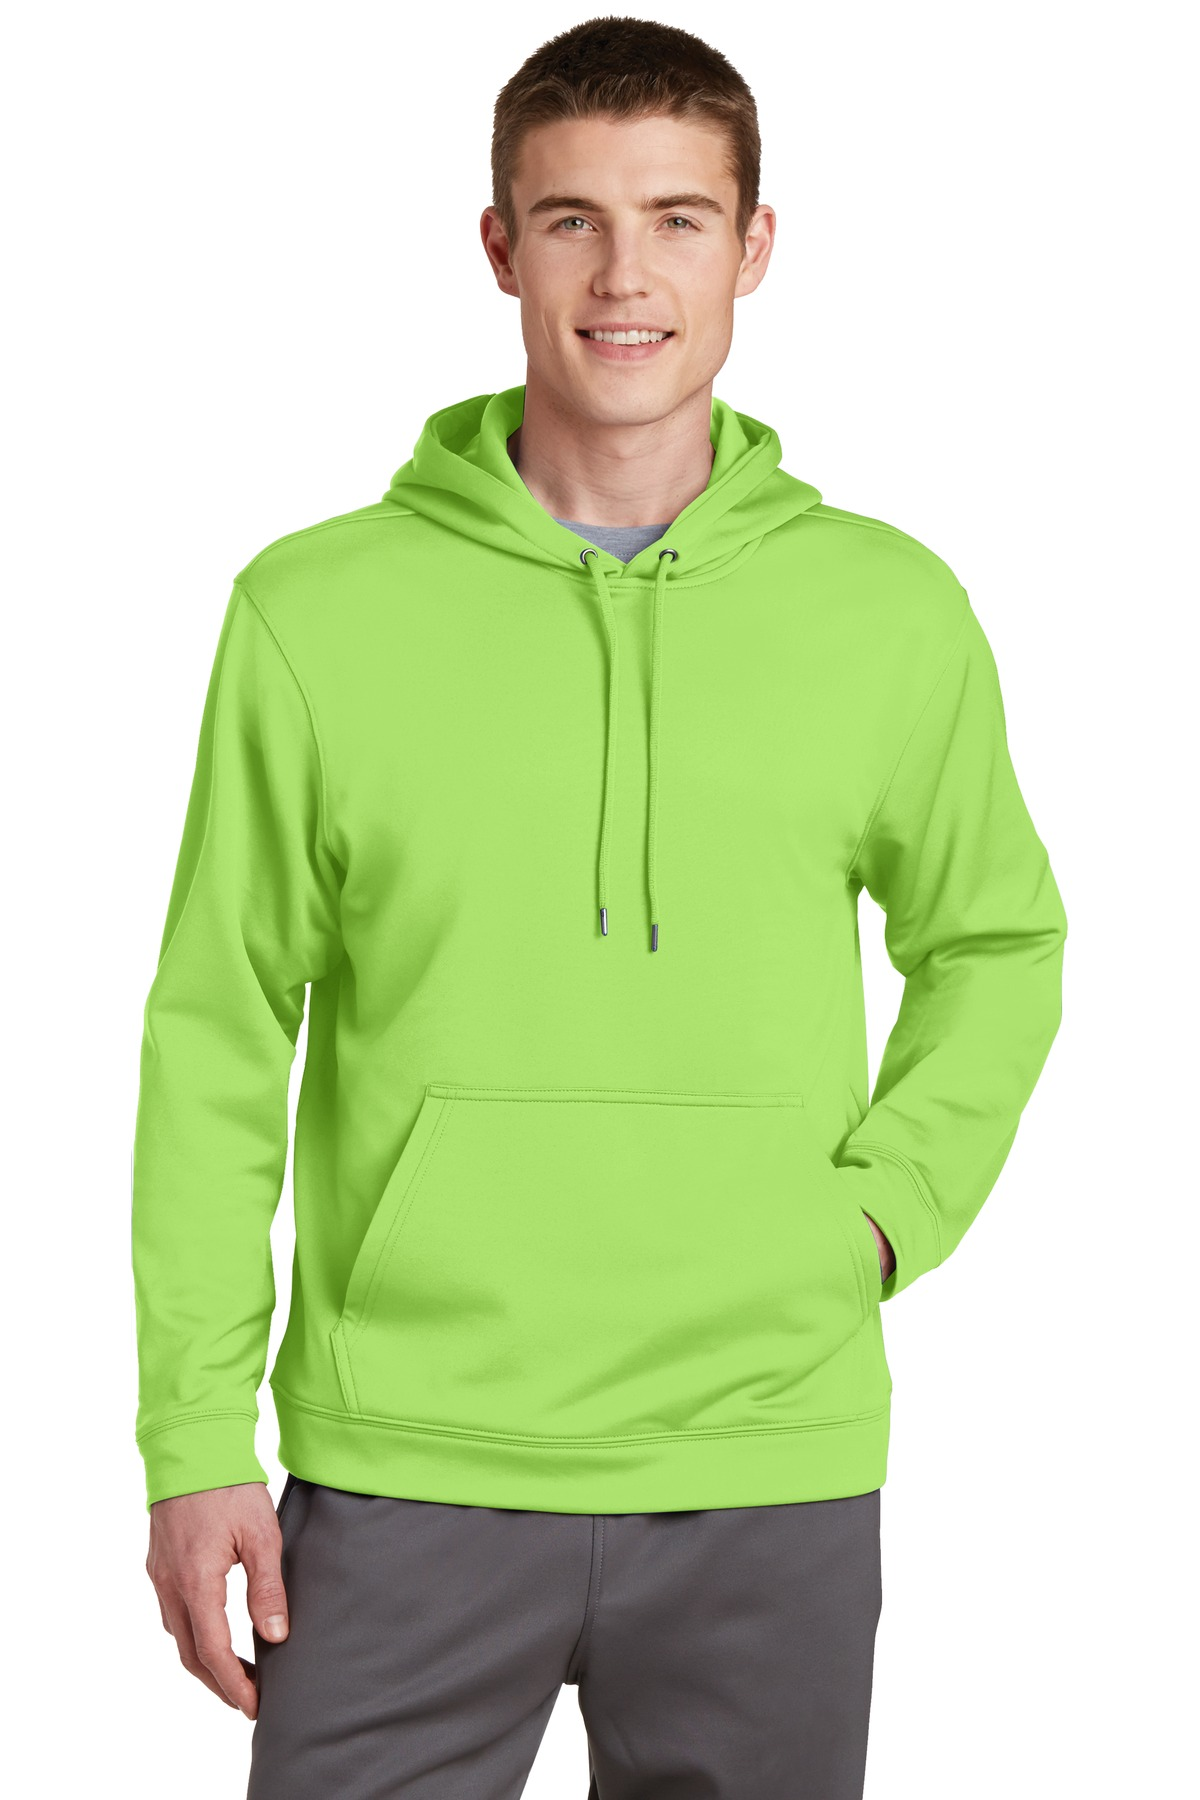 Sport-Tek ®  Sport-Wick ®  Fleece Hooded Pullover.  F244 - Lime Shock